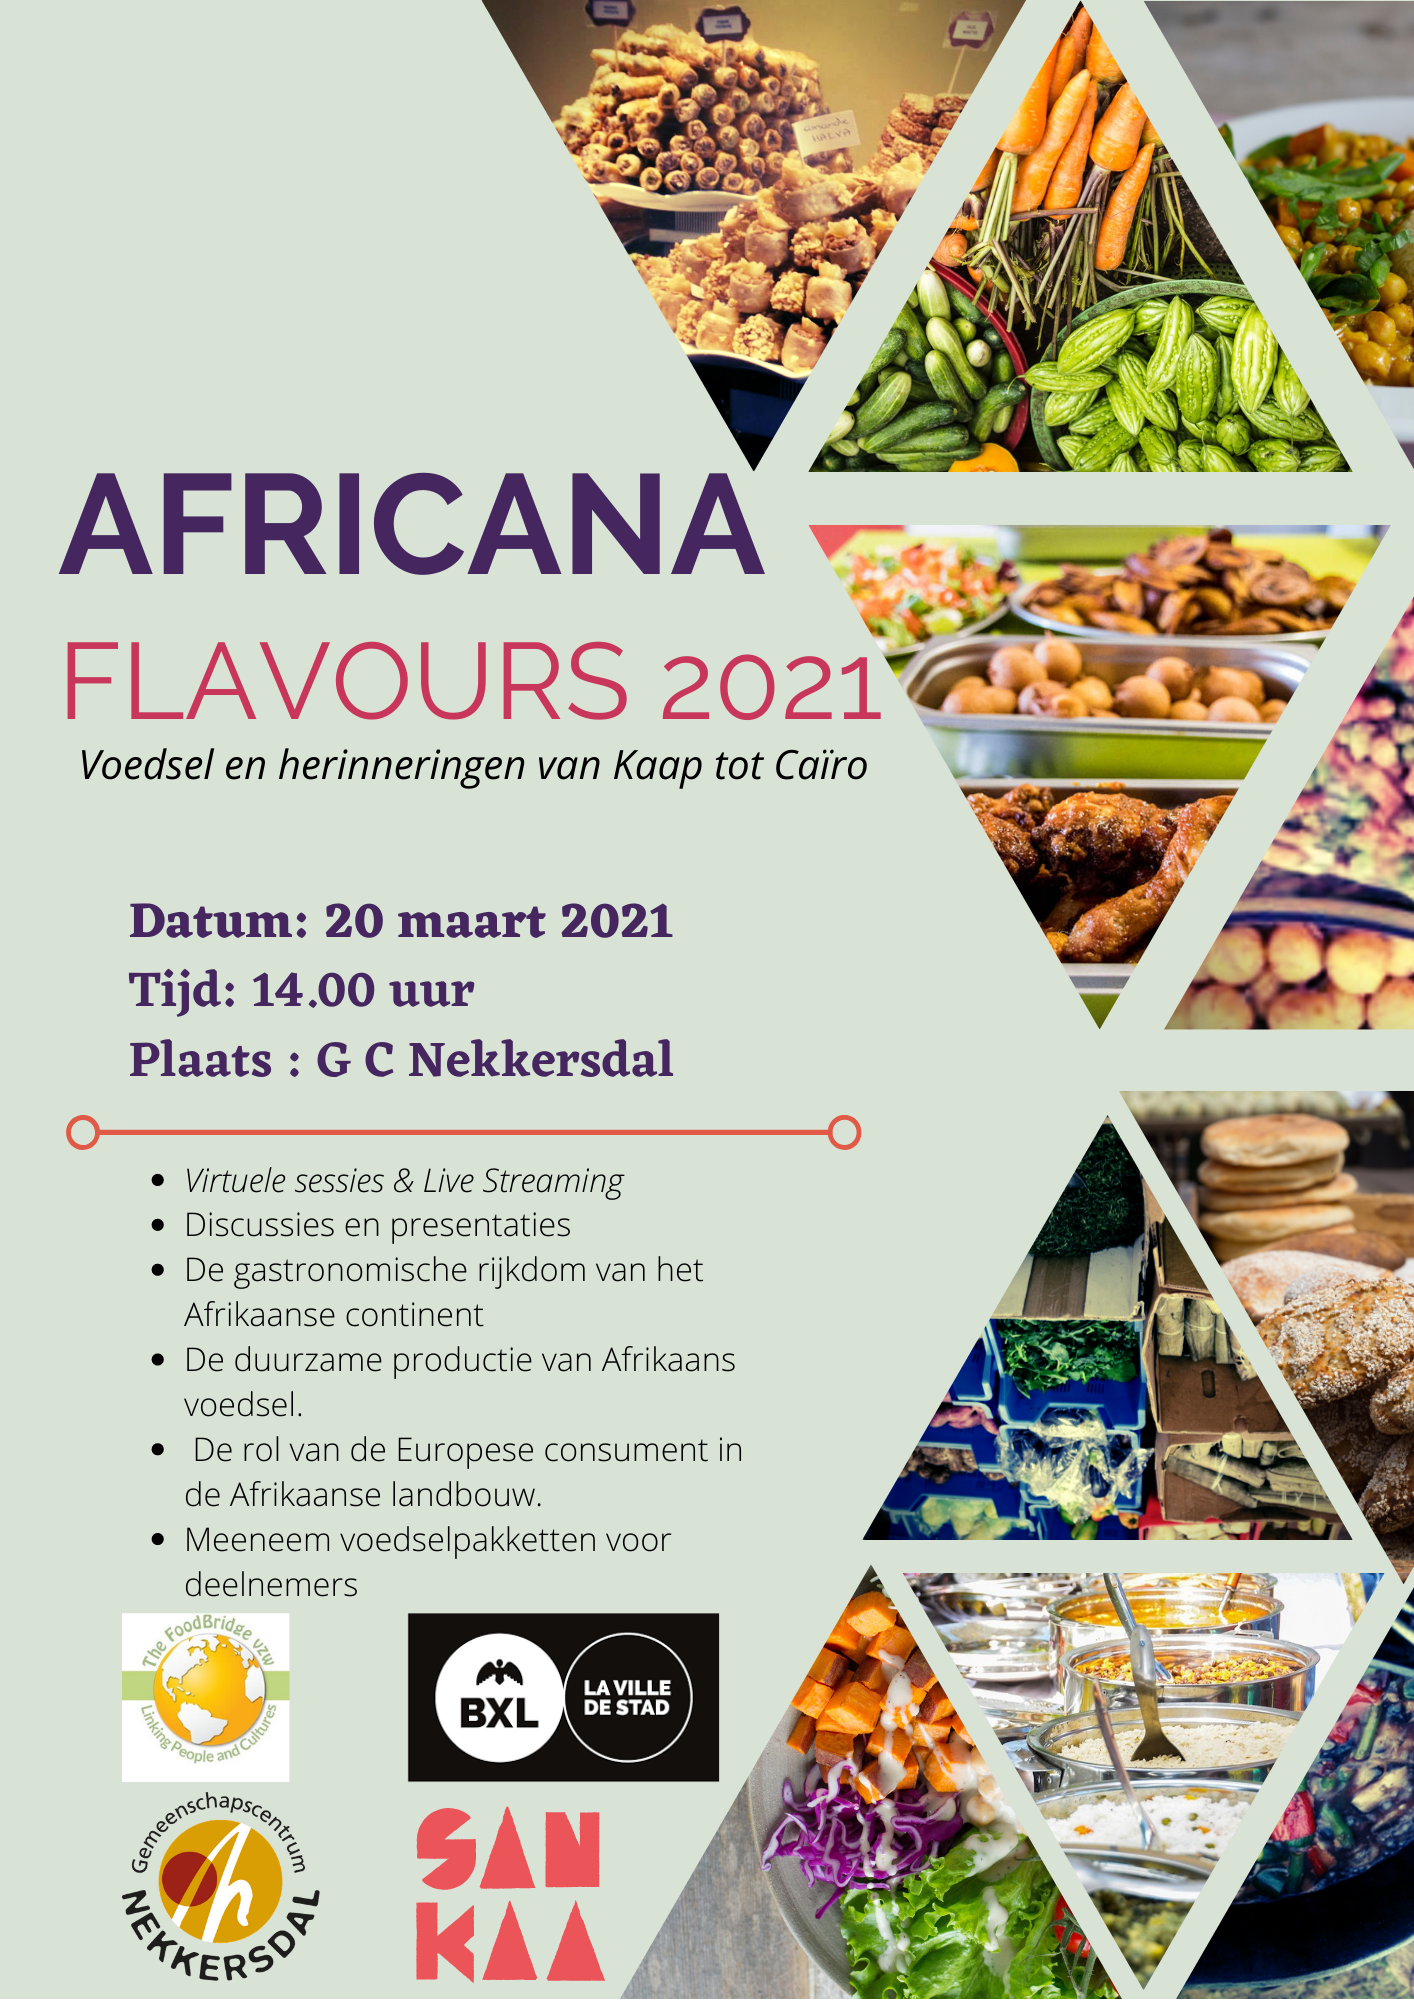 Africana Flavours 2021 with Logos